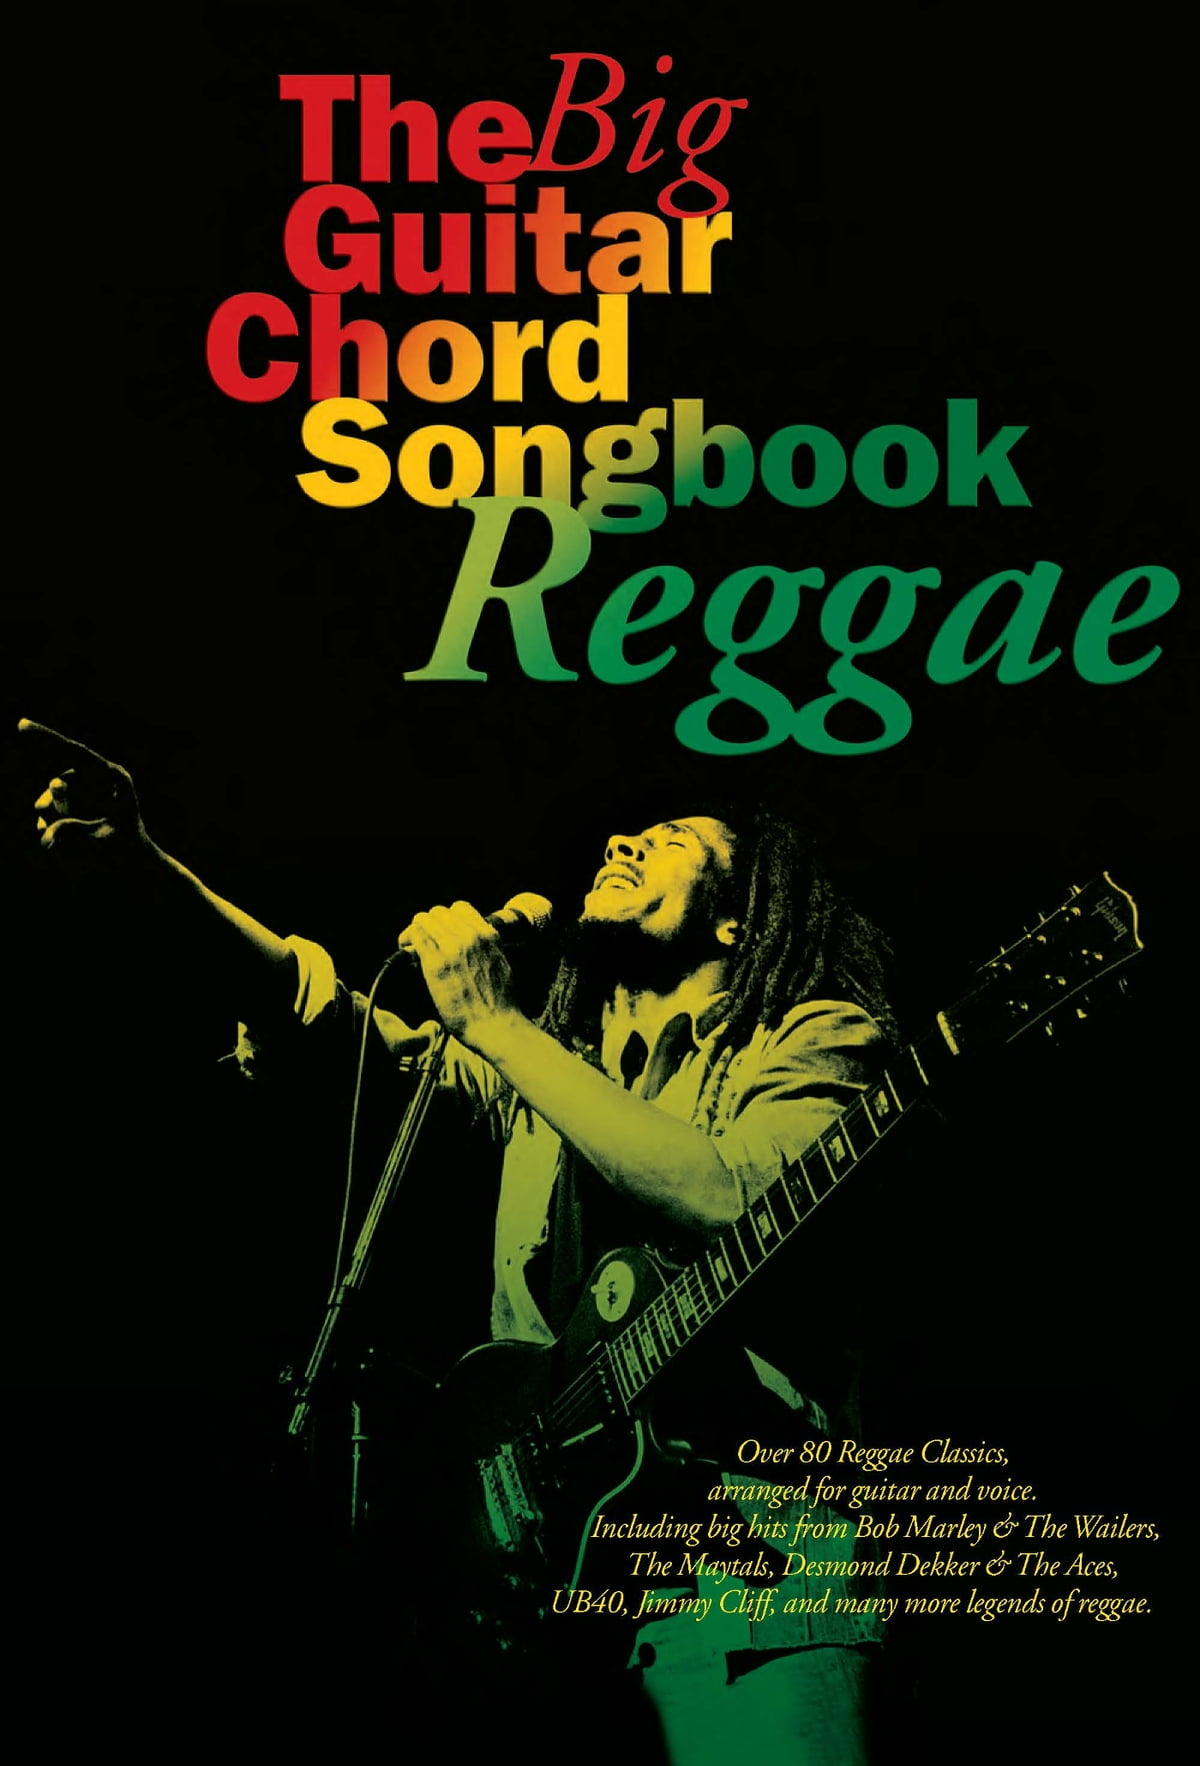 The Big Guitar Chord Songbook Reggae Ebook By Wise Publications